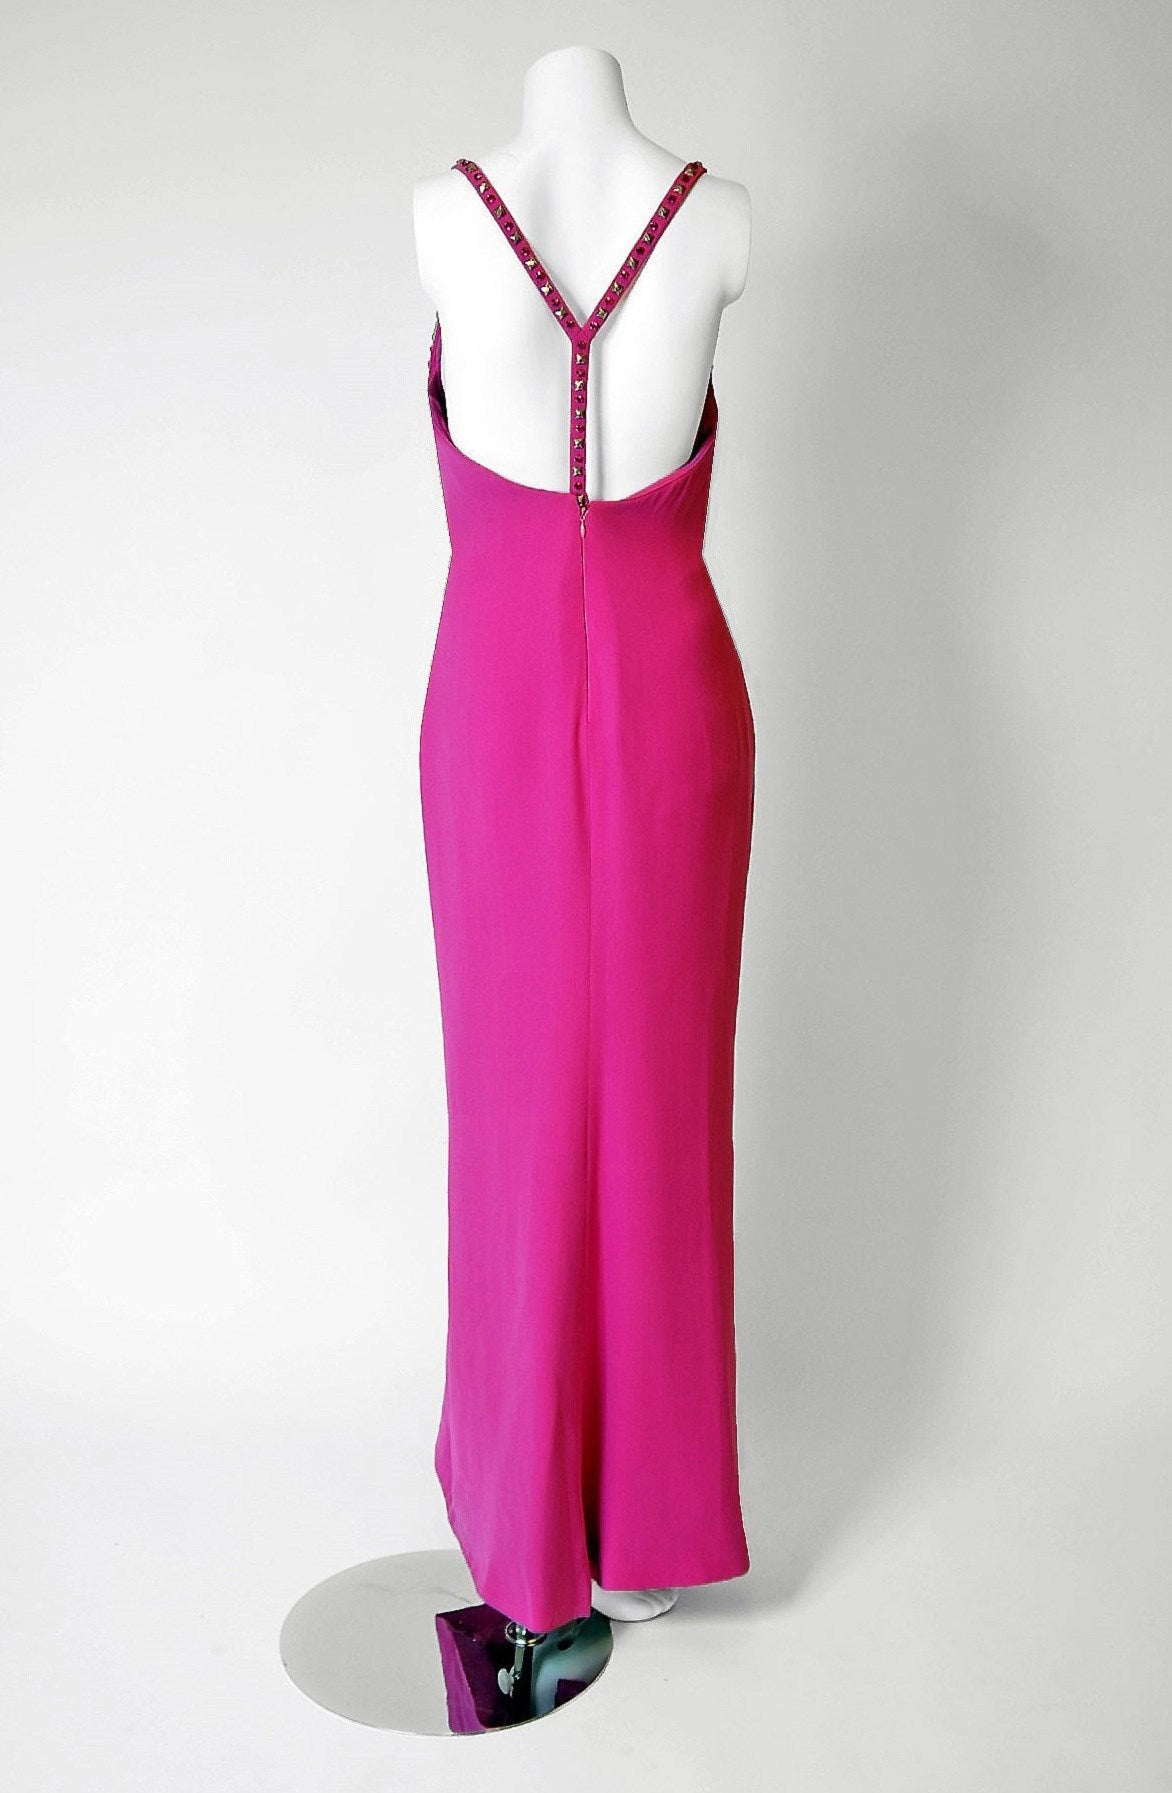 1995 Gianni Versace Couture Fuchsia Silk Studded Shelf-Bust Hourglass Gown In Excellent Condition For Sale In Beverly Hills, CA